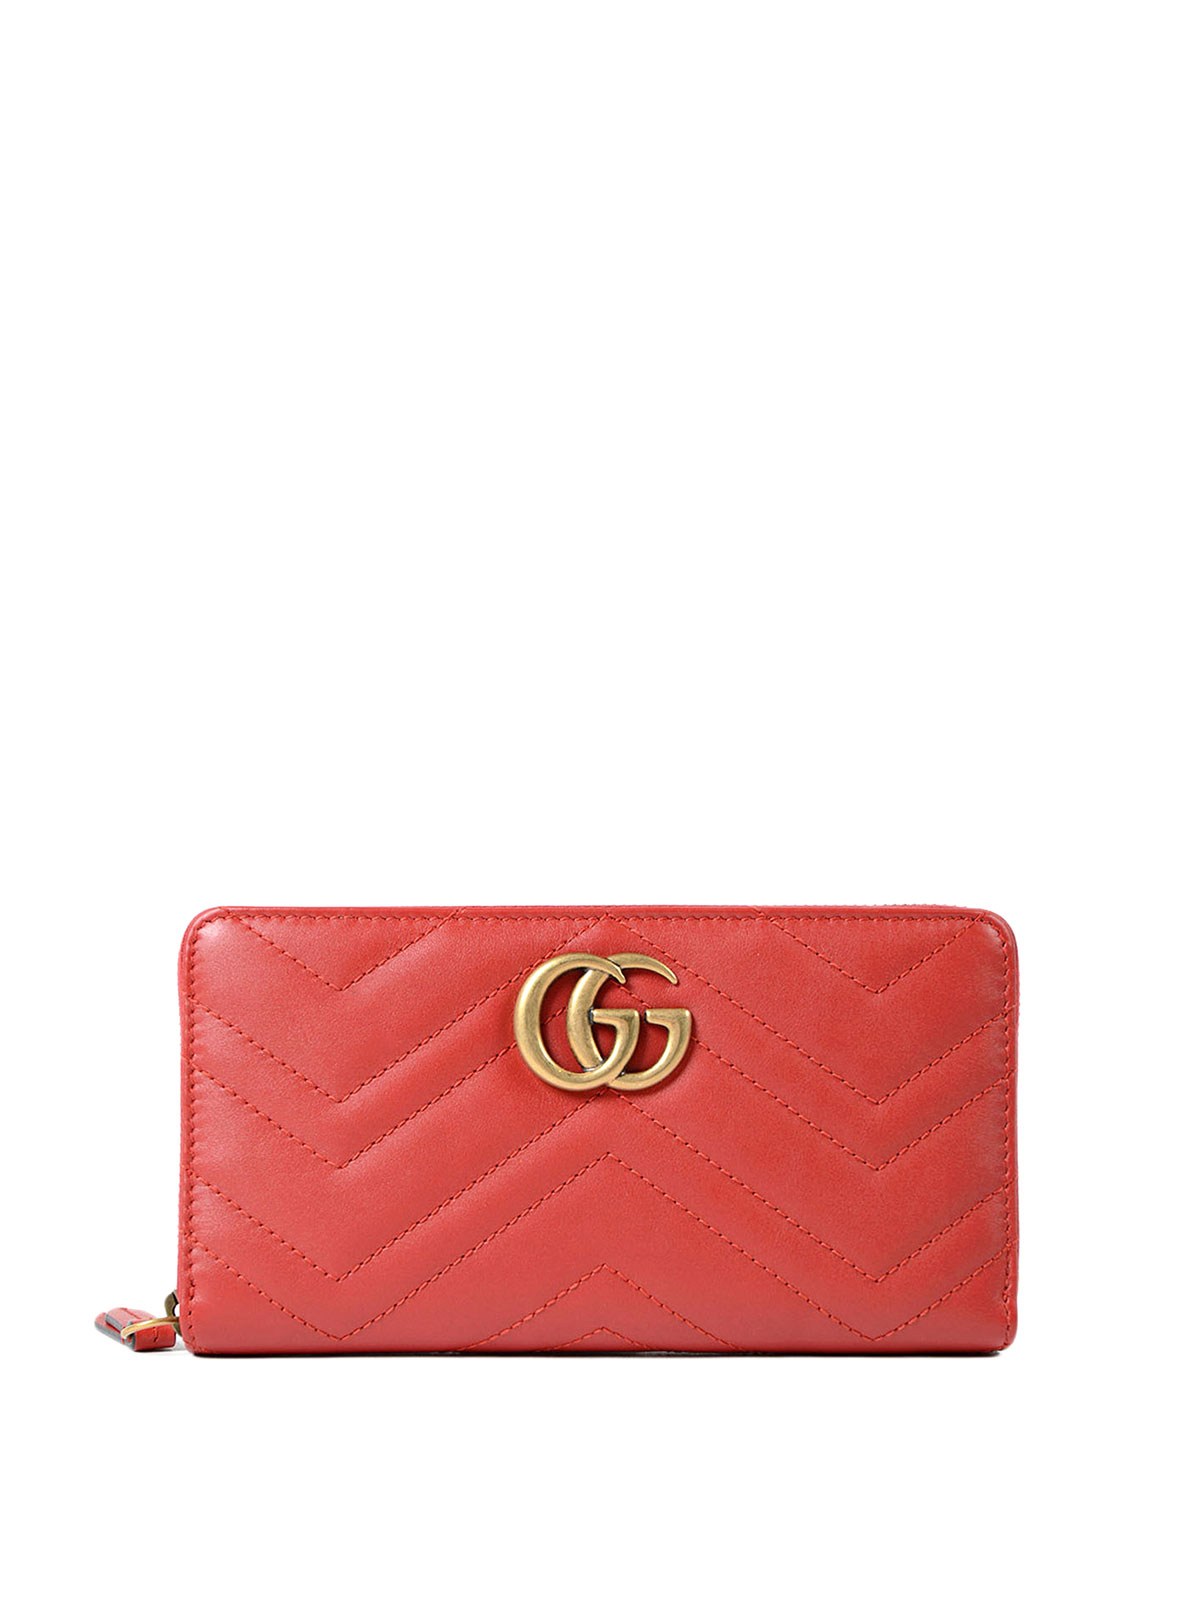 36ef81a15e2 Gucci - GG Marmont zip-around red wallet - wallets   purses ...